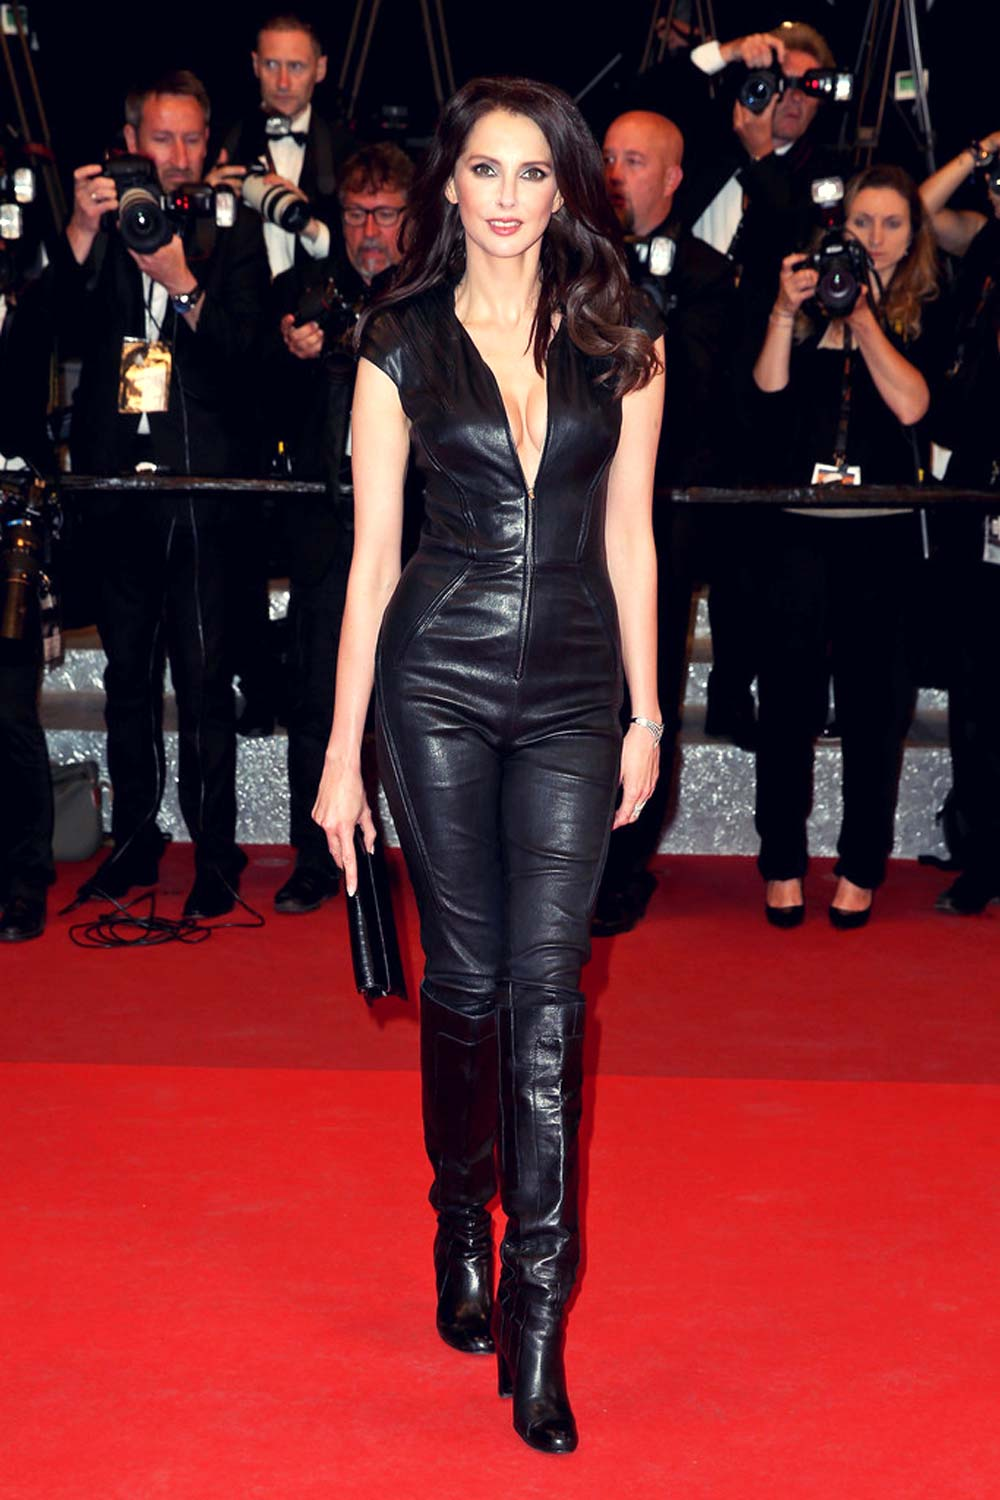 Frederique Bel attends It's Only The End Of The World screening